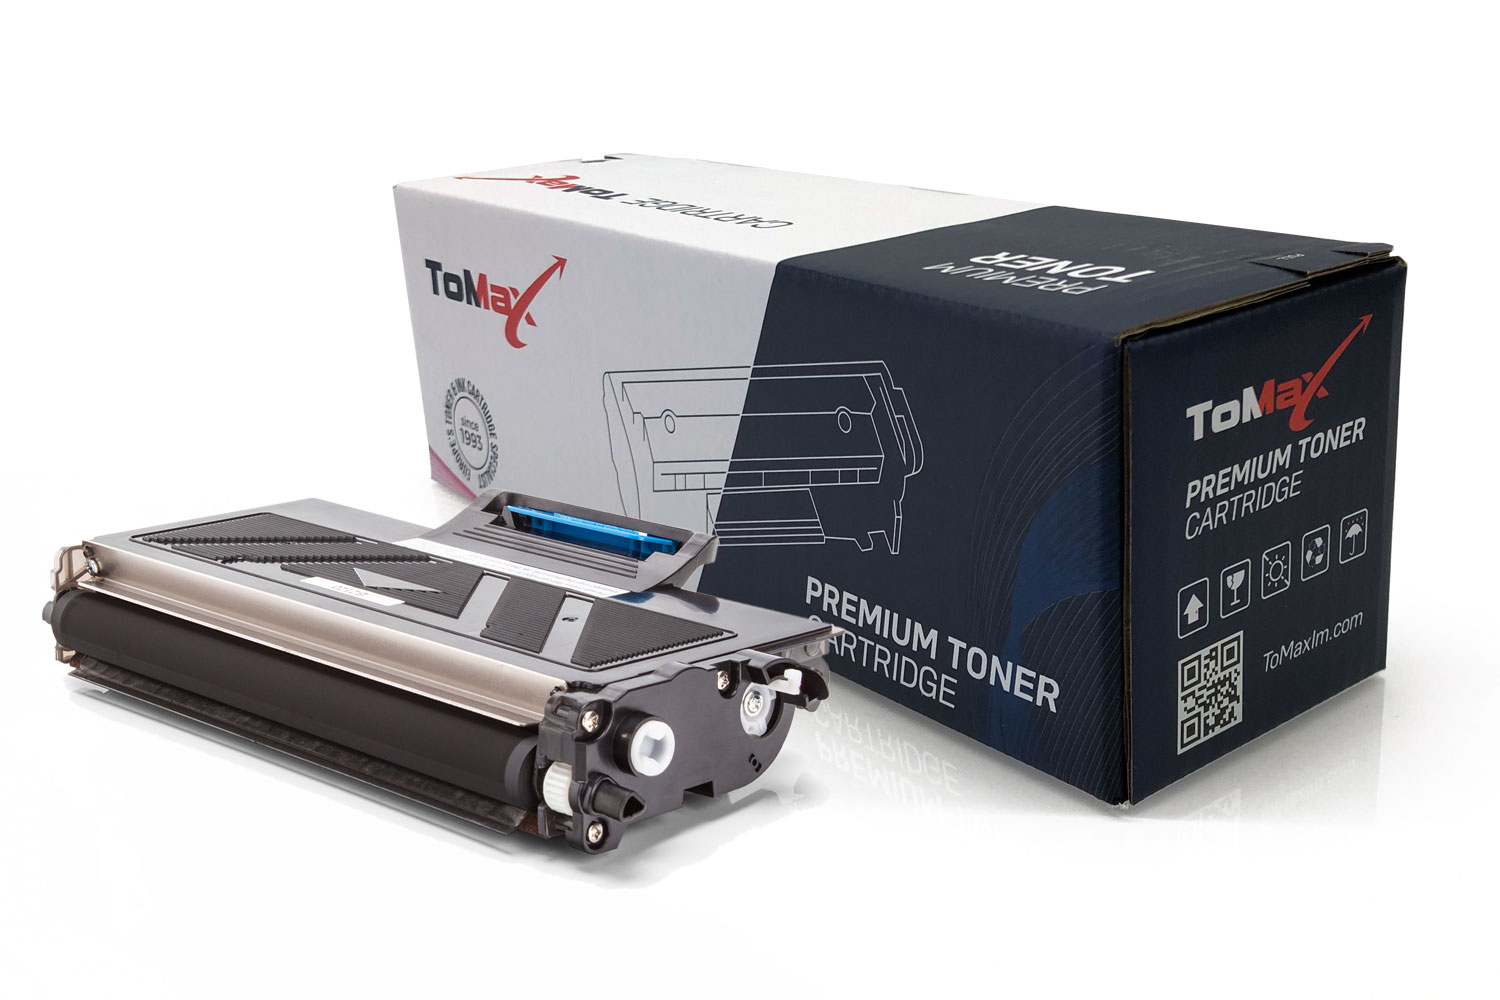 ToMax Premium Toner Cartridge replaces HP Q5949A / 49A Black